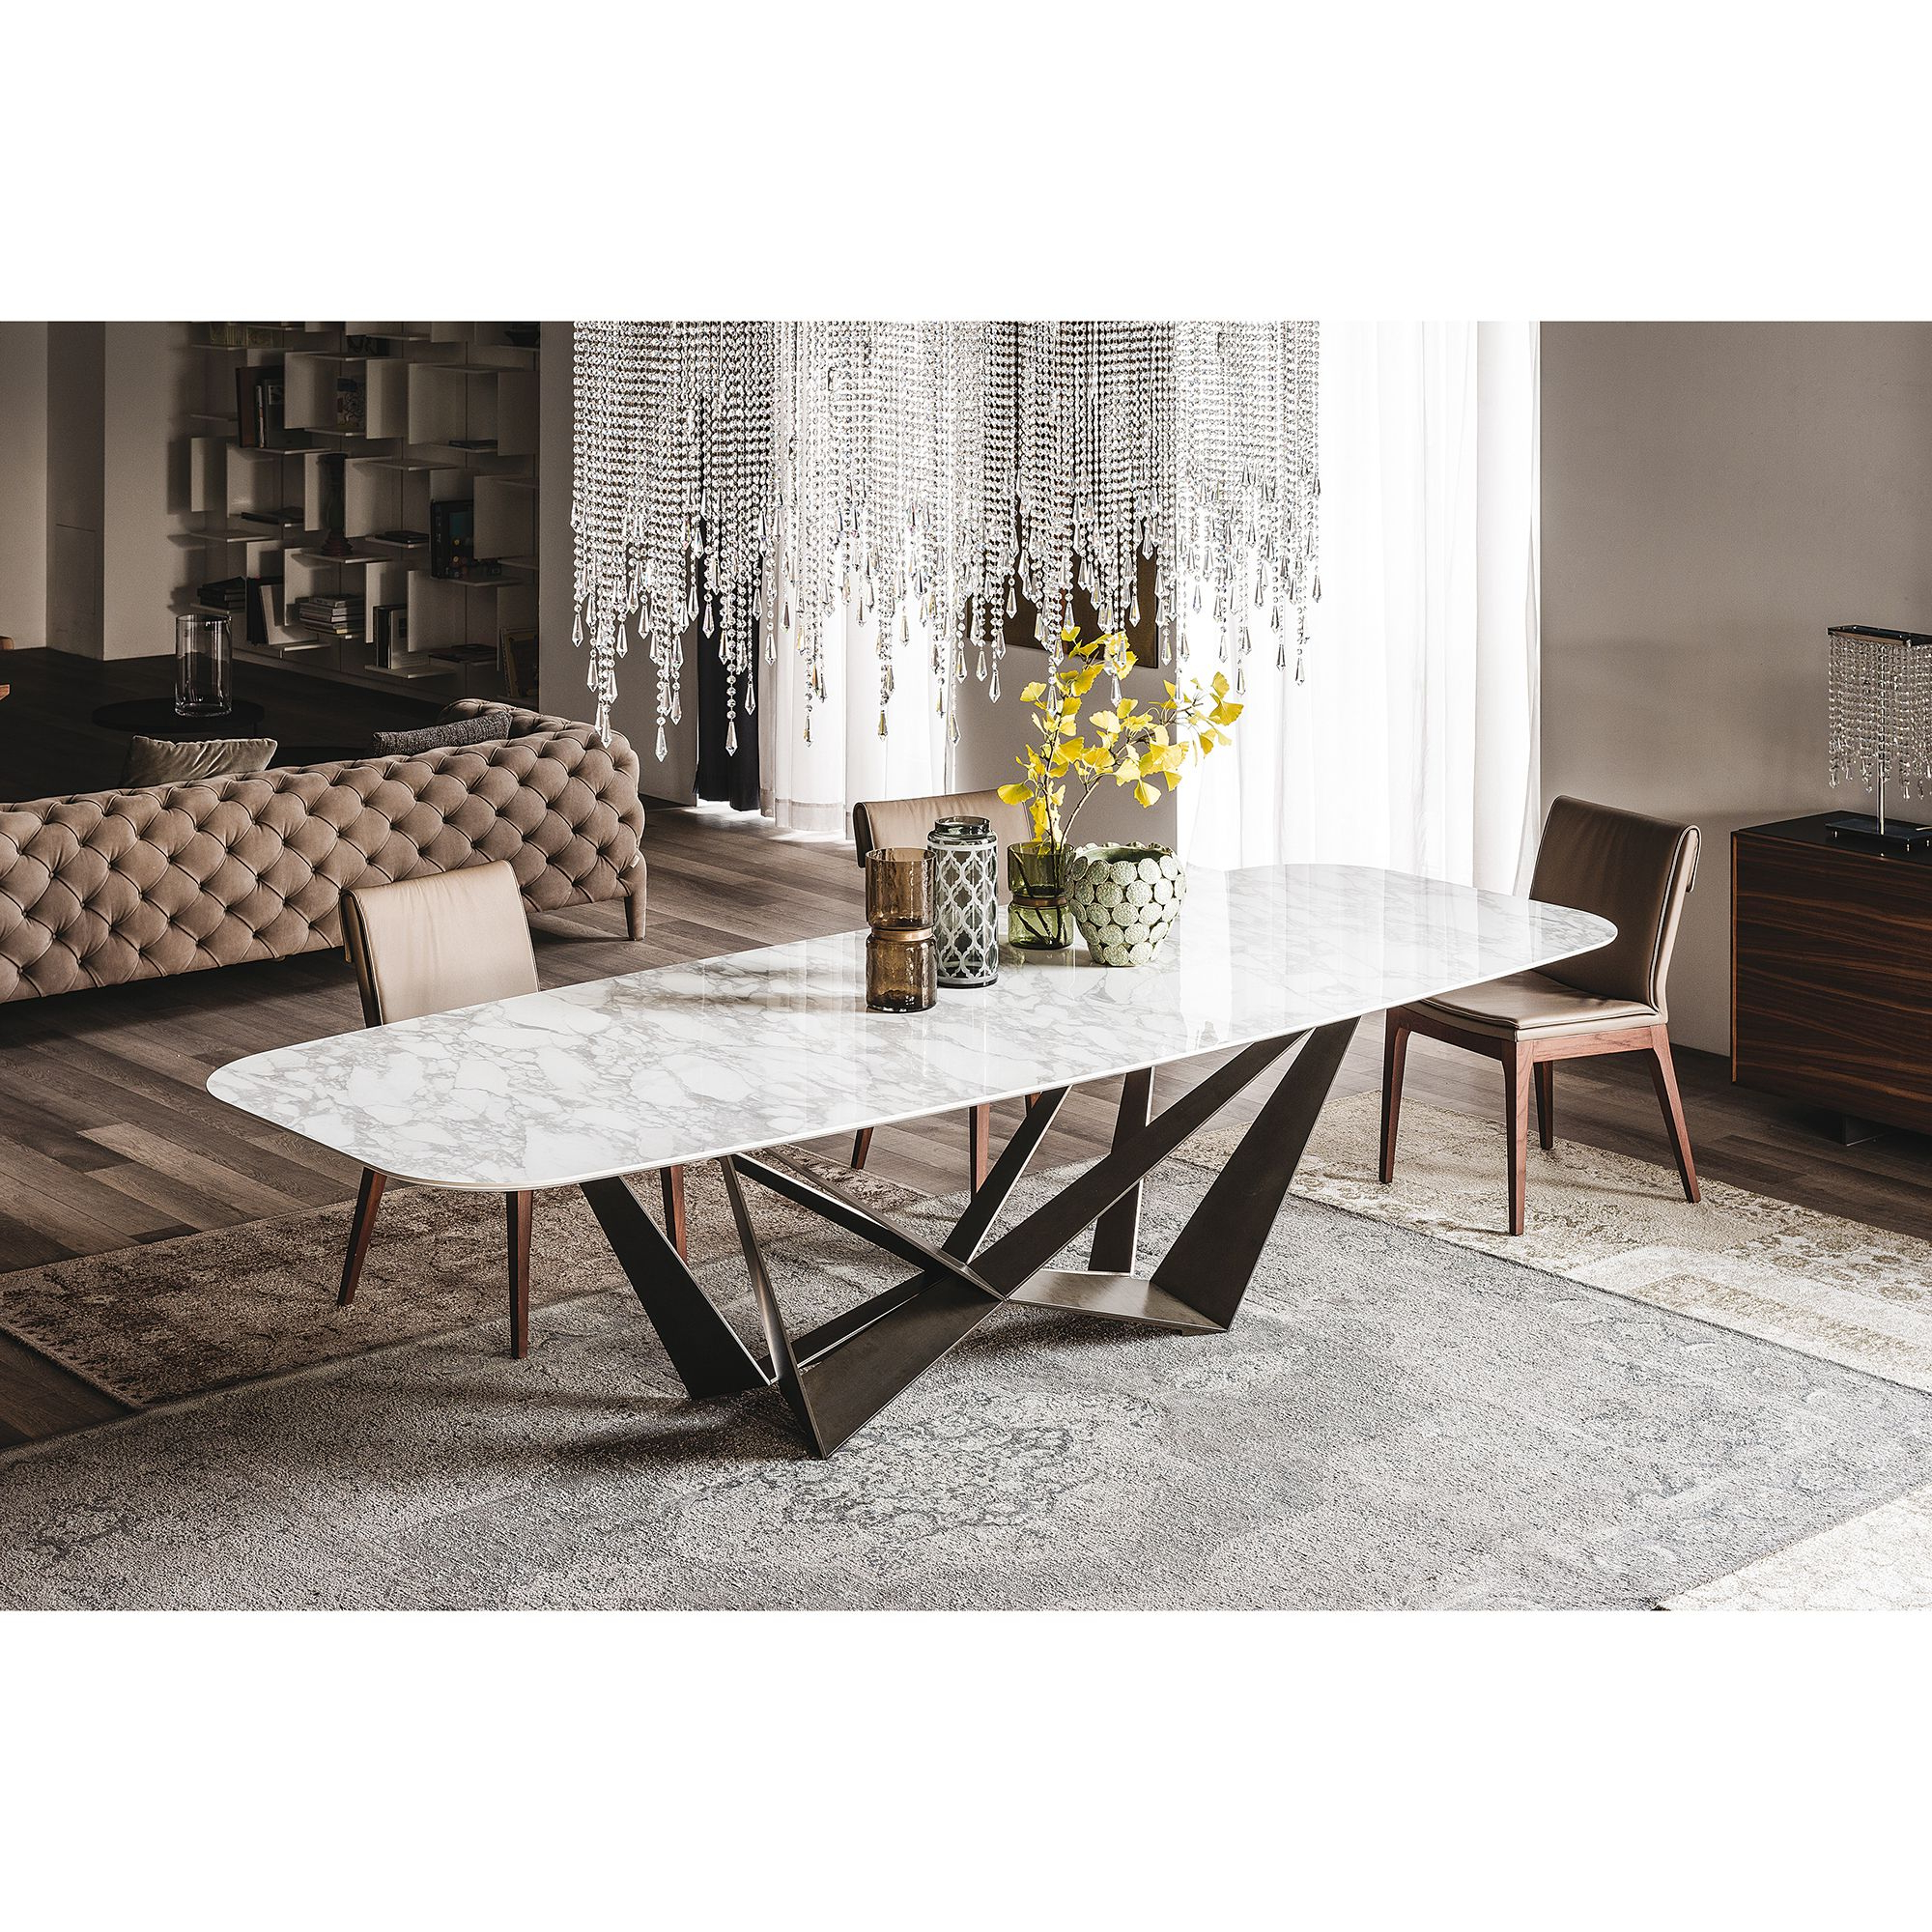 Faux Marble Finish Metal Contemporary Dining Tables Inside Latest Skorpio Dining Table (View 5 of 25)